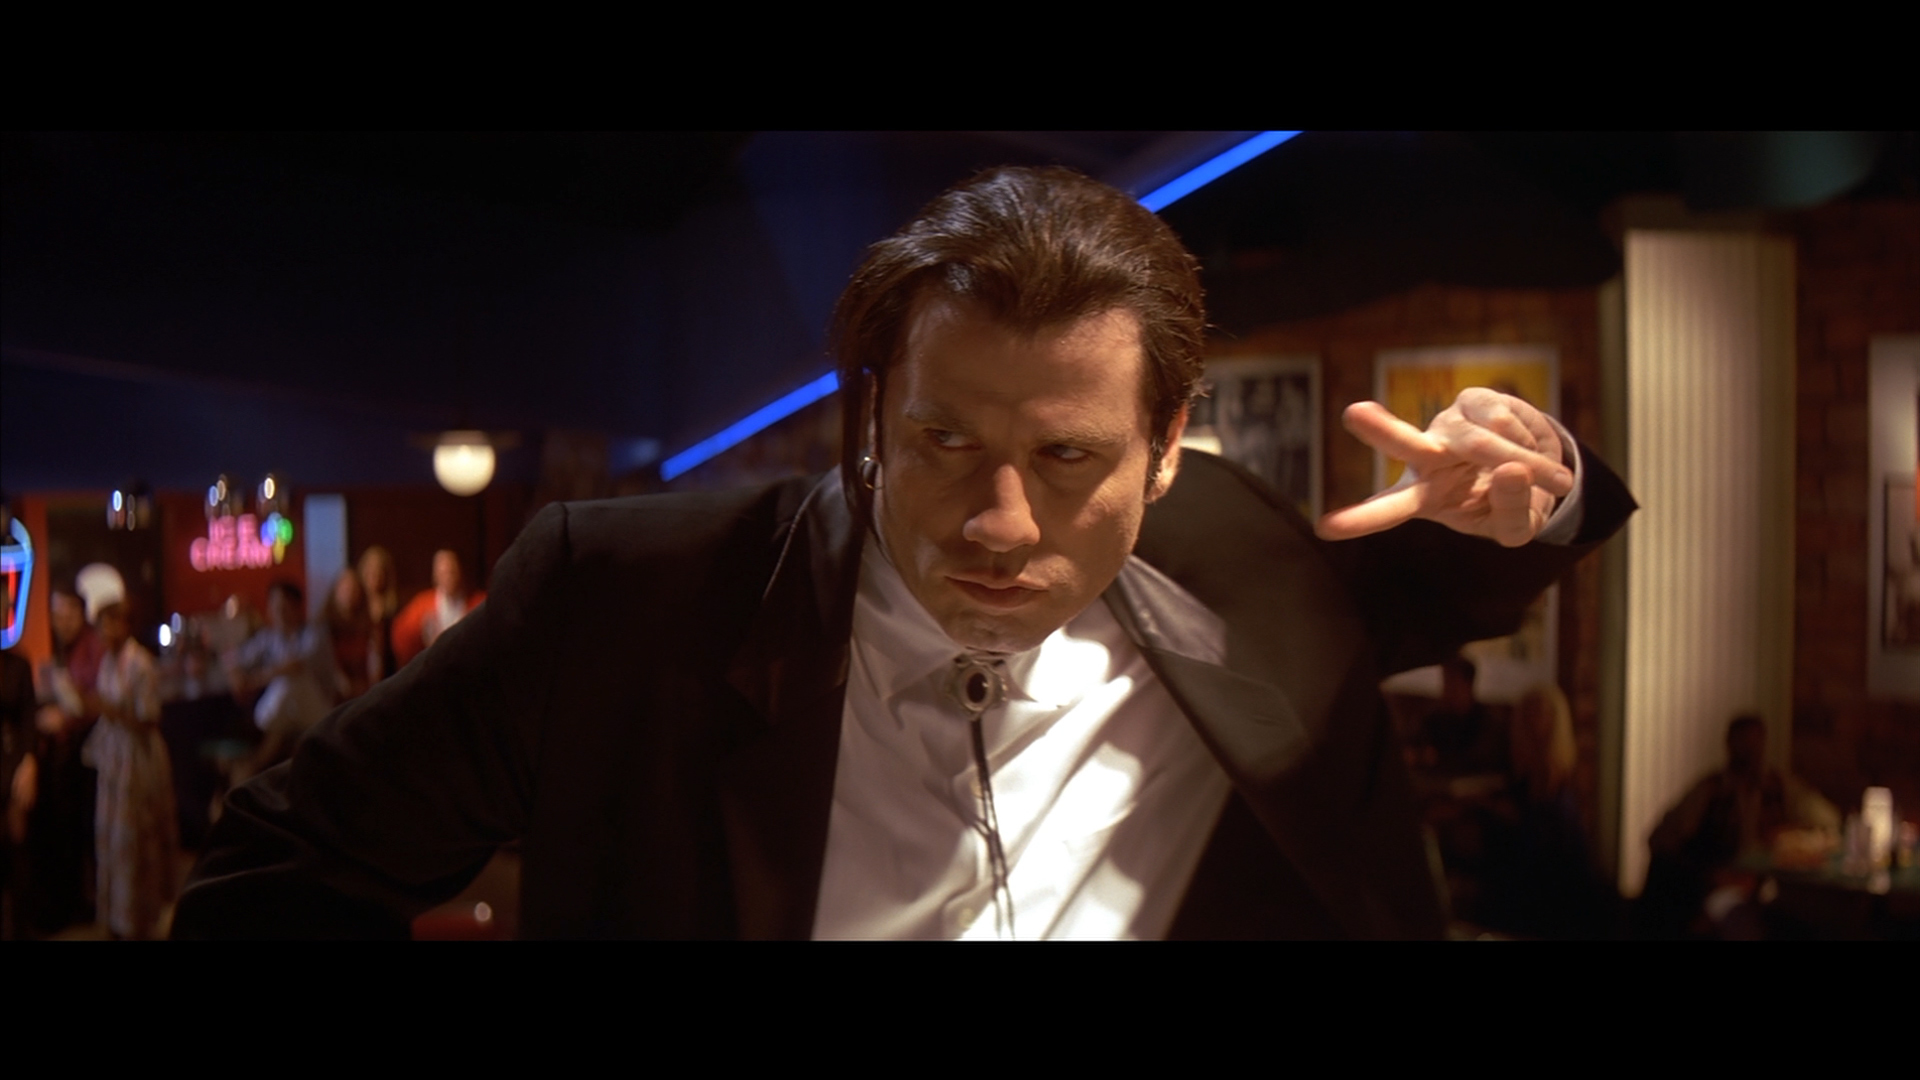 Pulp Fiction Quotes Wallpaper images free download 1920x1080